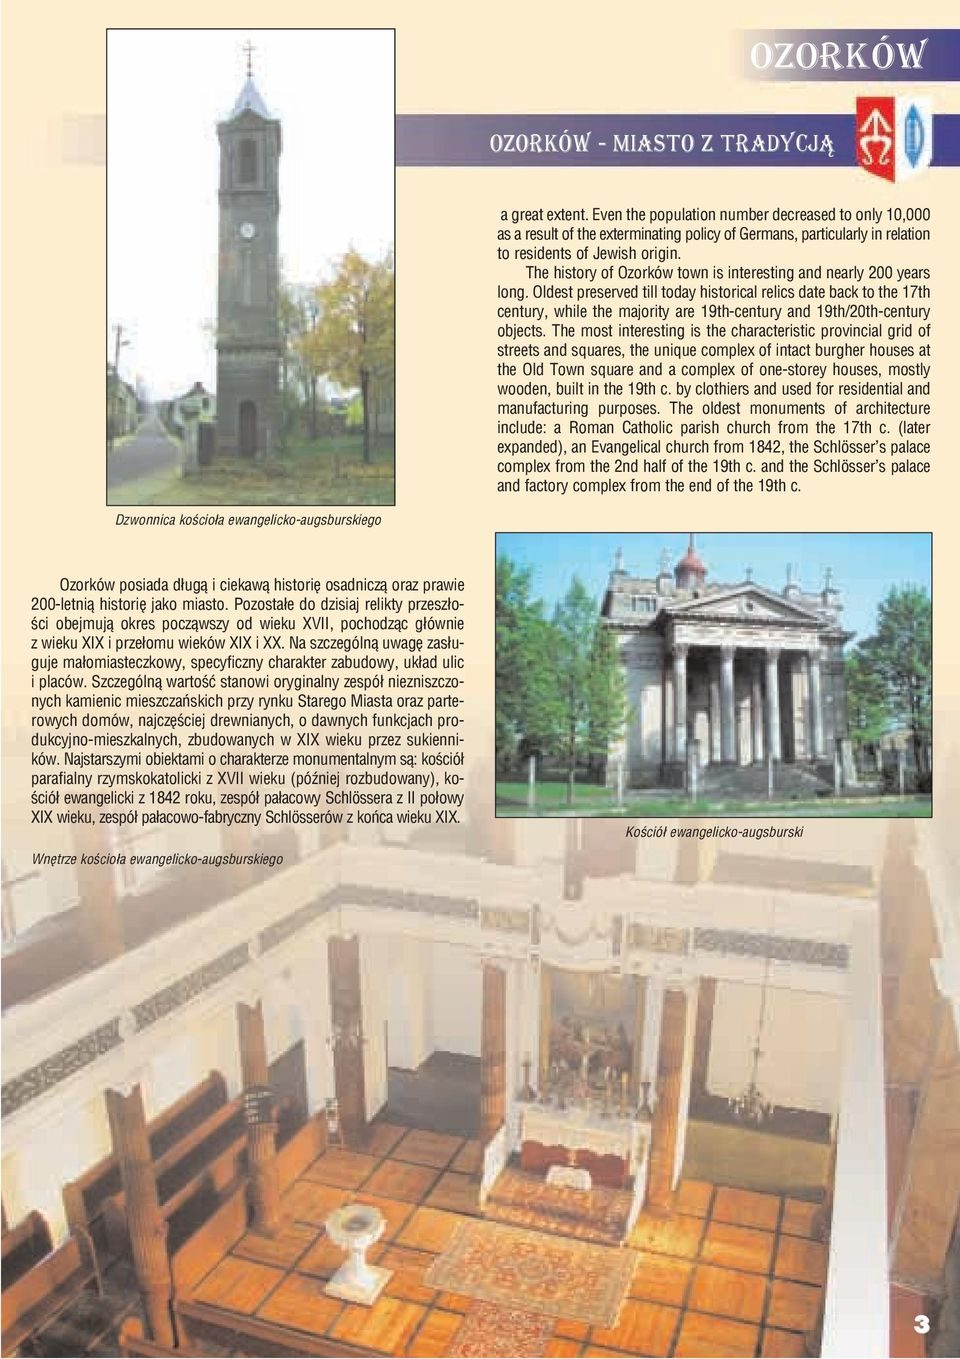 The history of Ozorków town is interesting and nearly 200 years long.